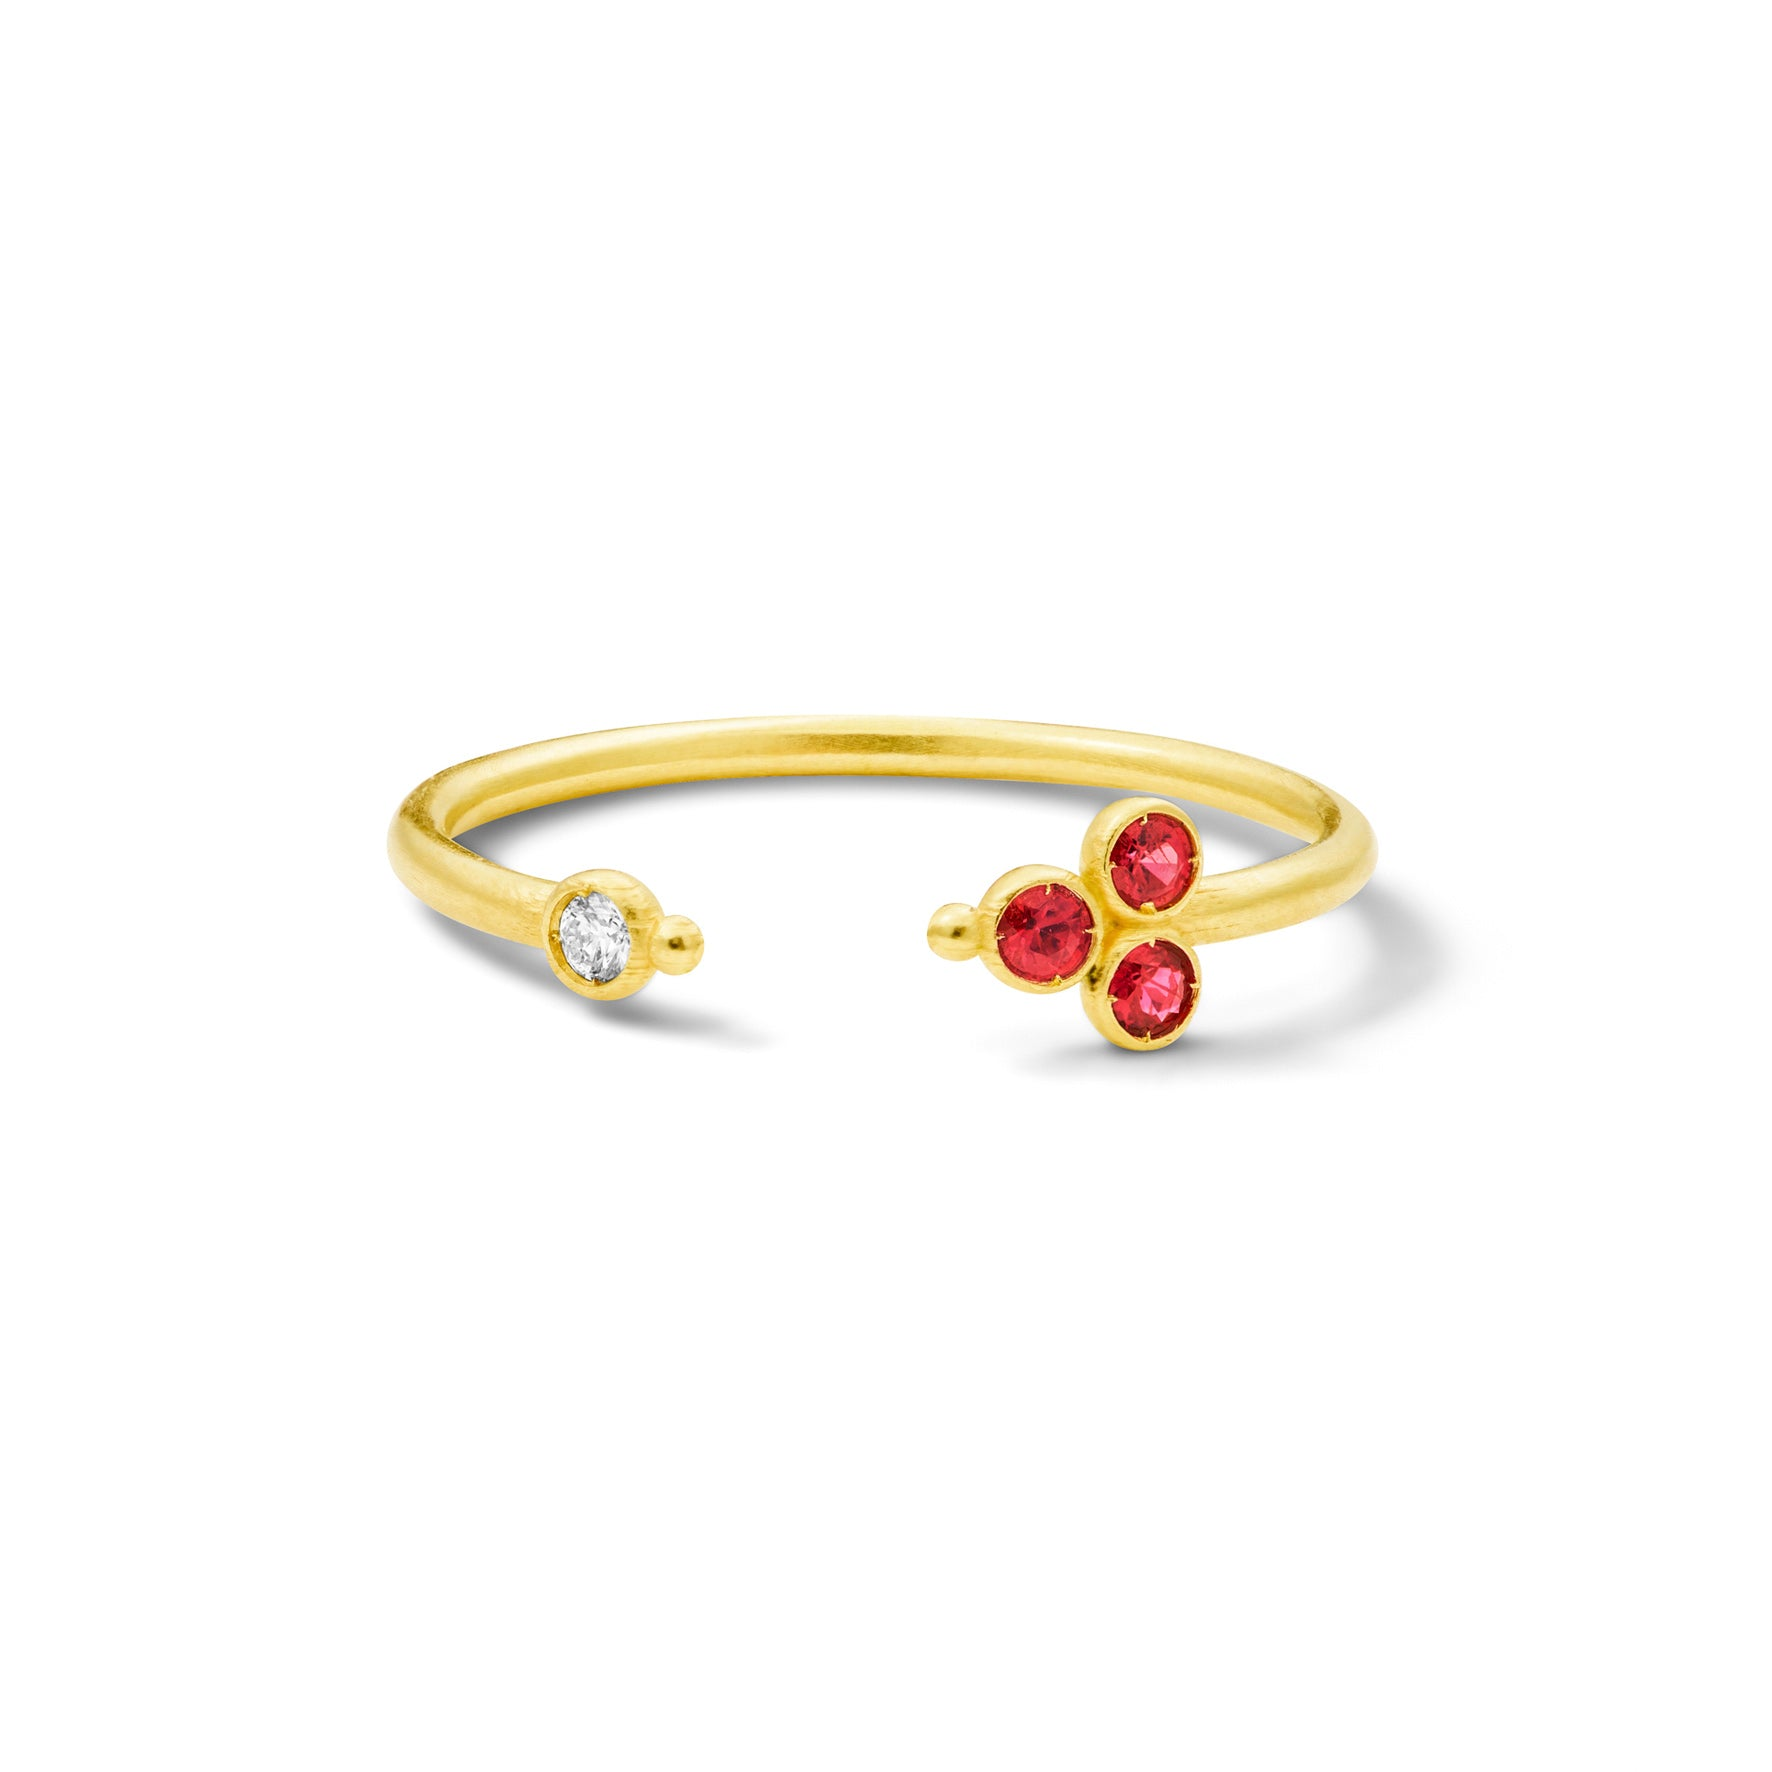 Bague Open Delta Or jaune, Rubis et Diamant